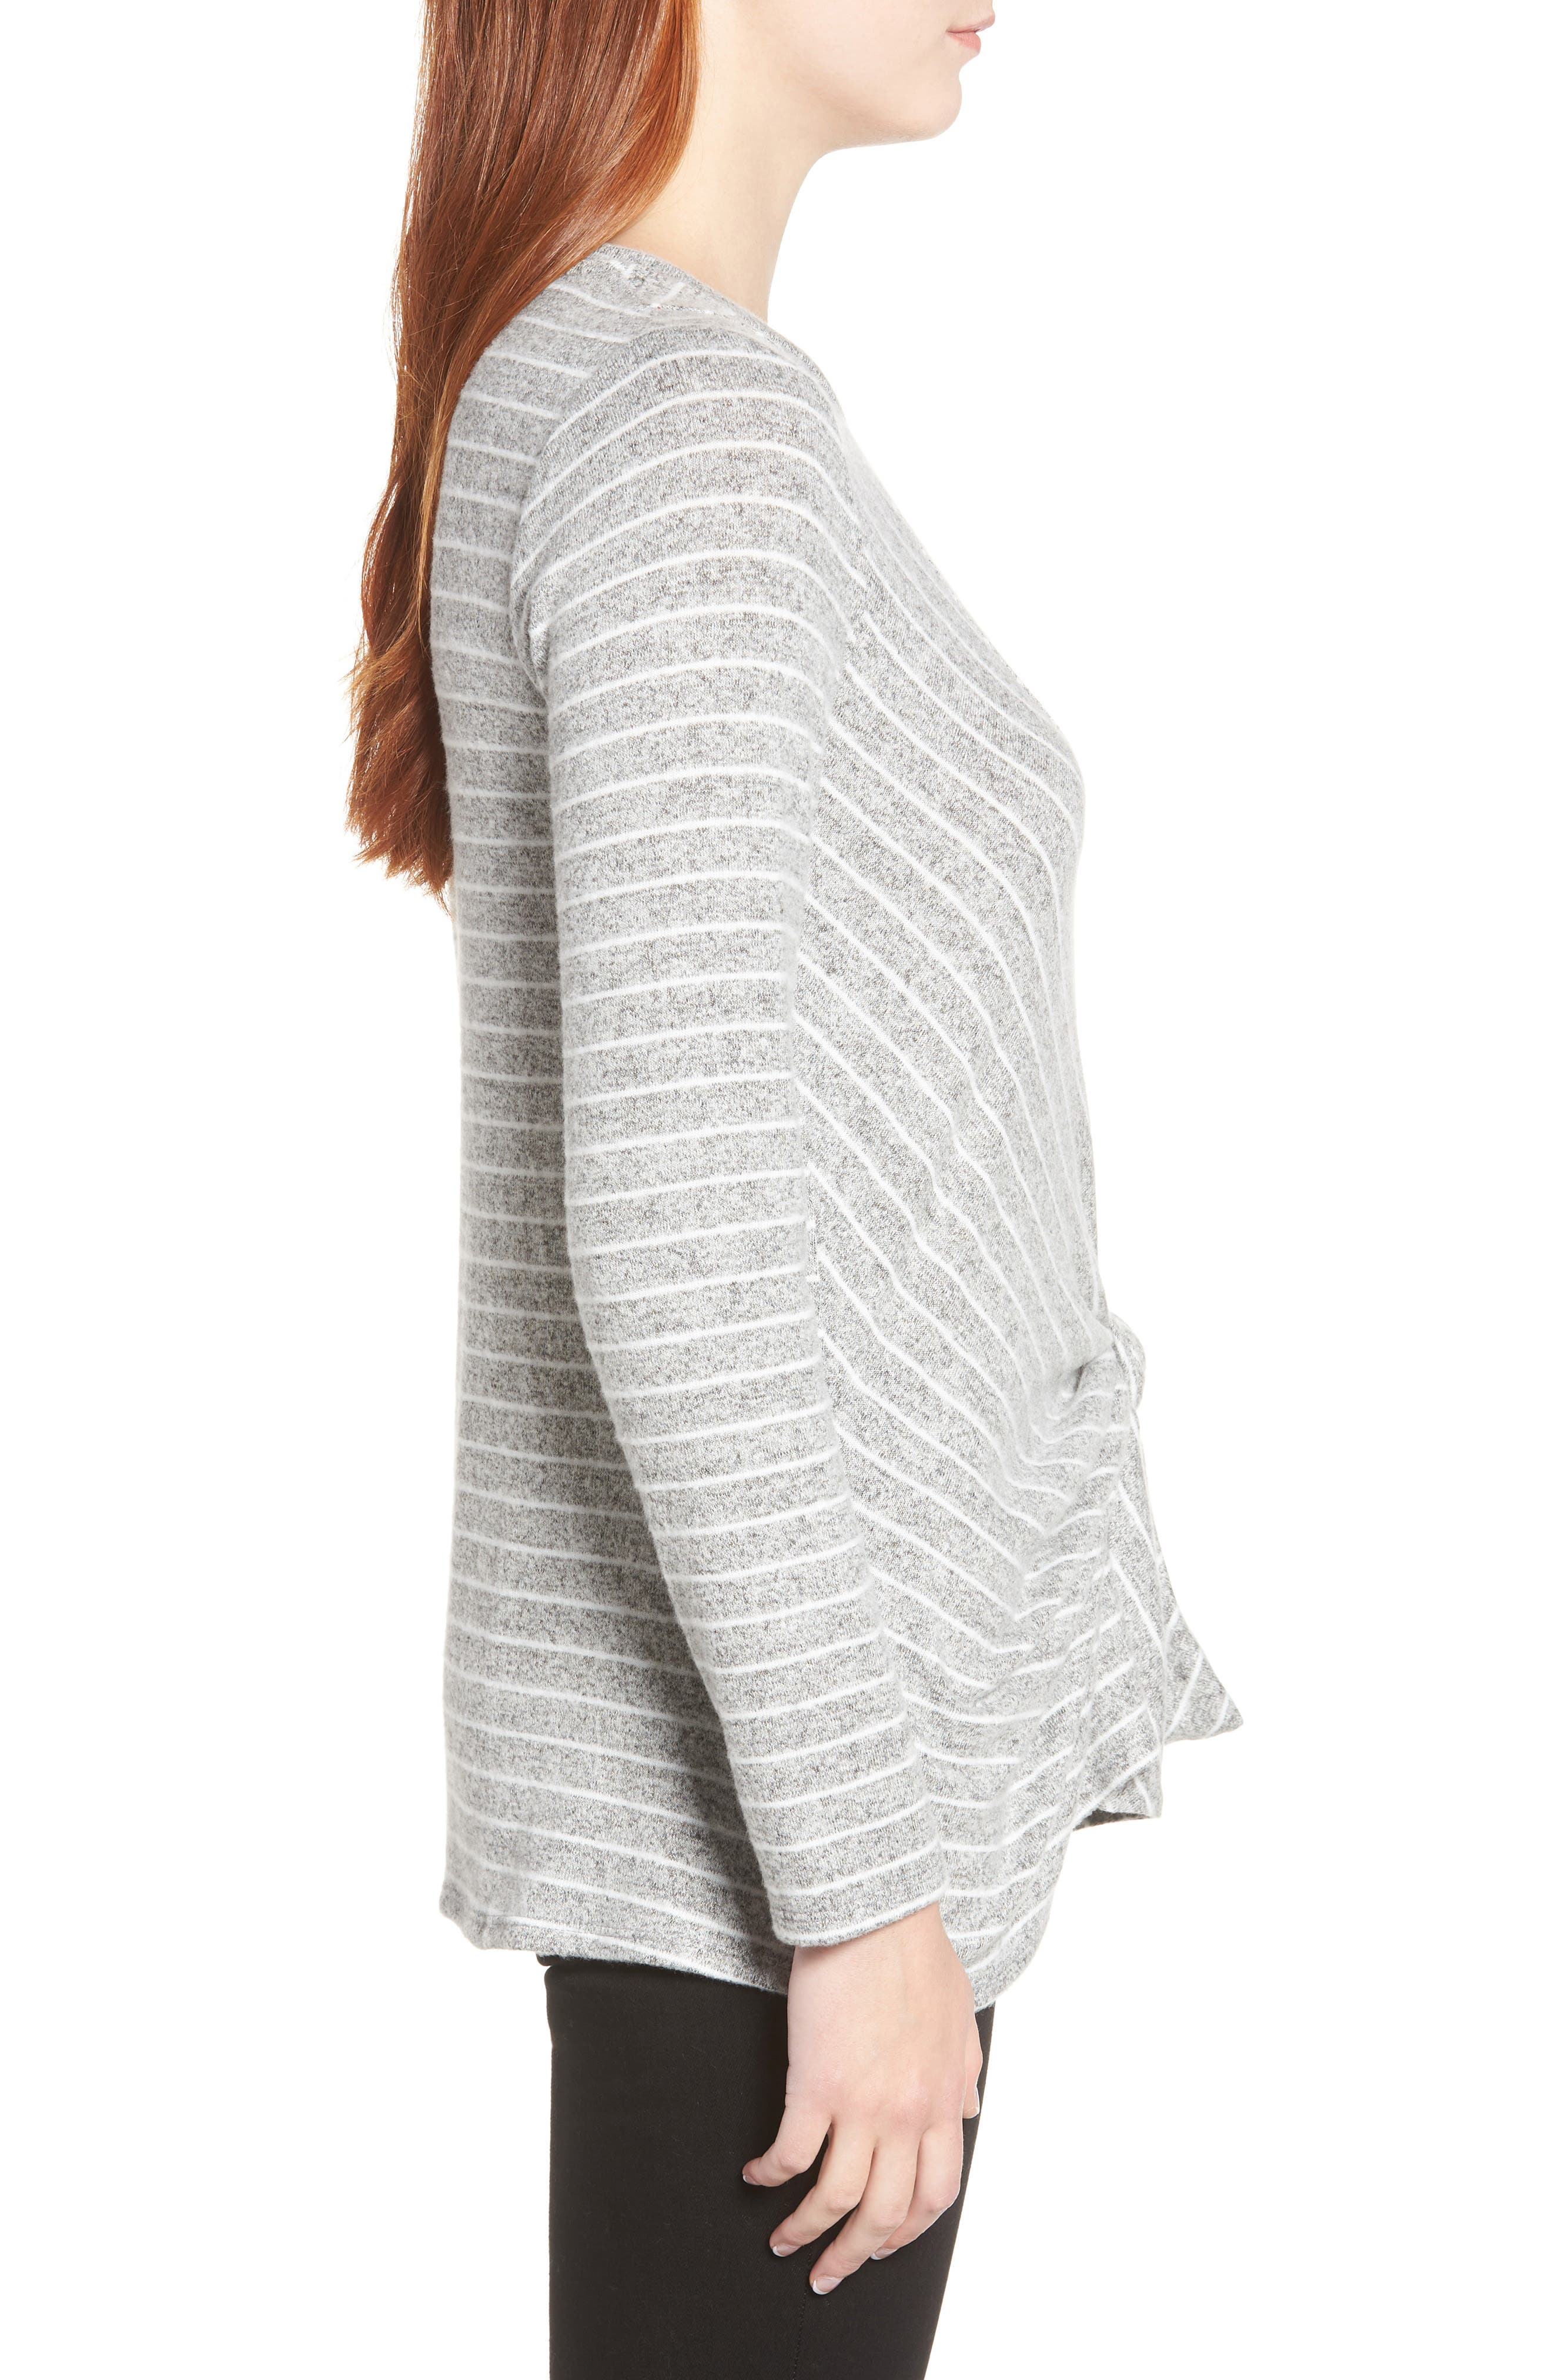 x Living in Yellow Lou Tie Front Fleece Sweater,                             Alternate thumbnail 3, color,                             GREY/ IVORY